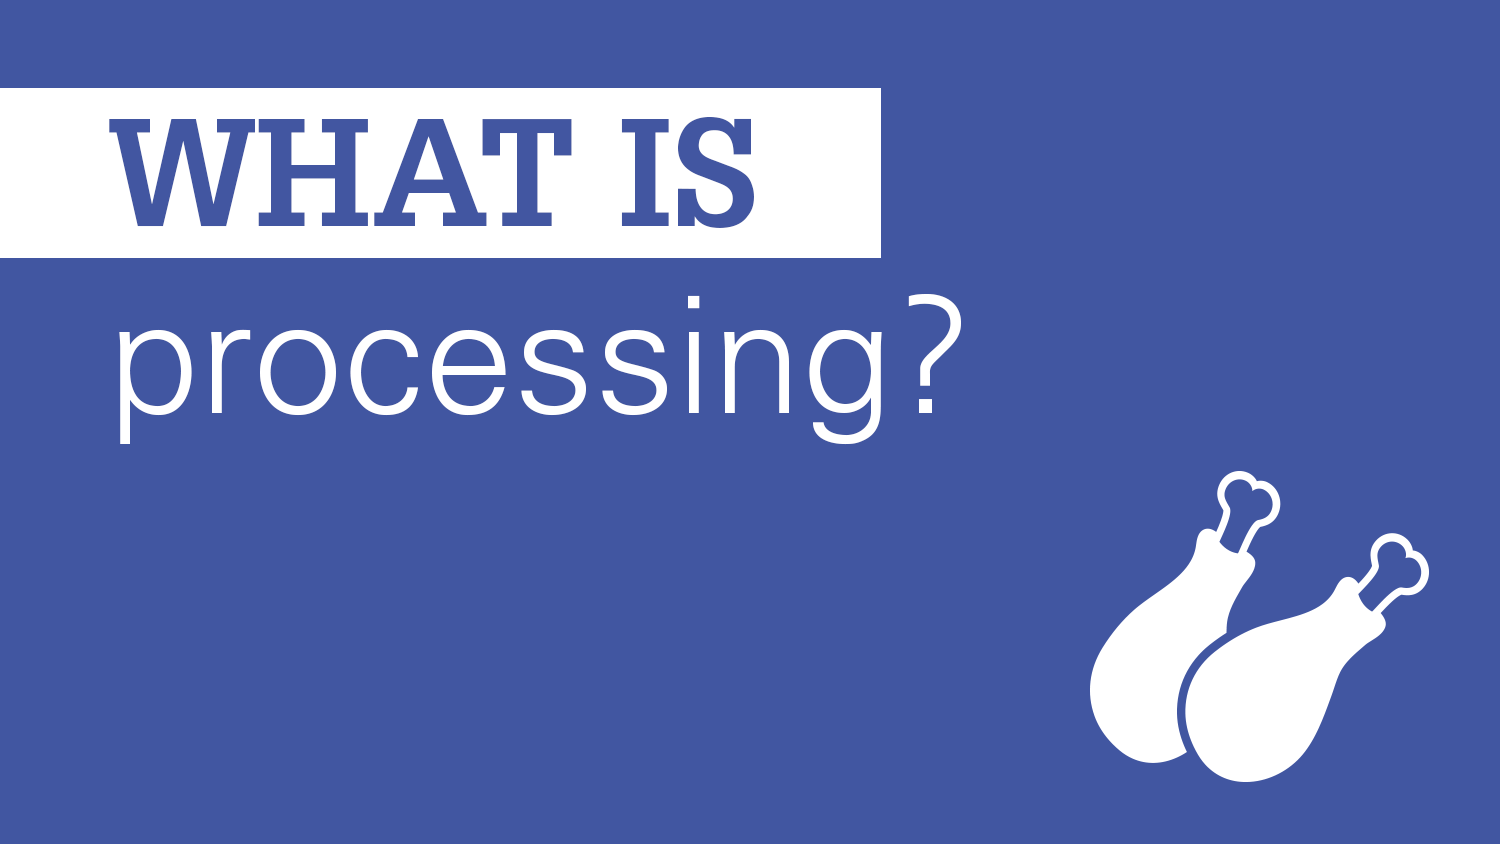 blue and white image showing the question 'what is processing' and an icon of drumsticks